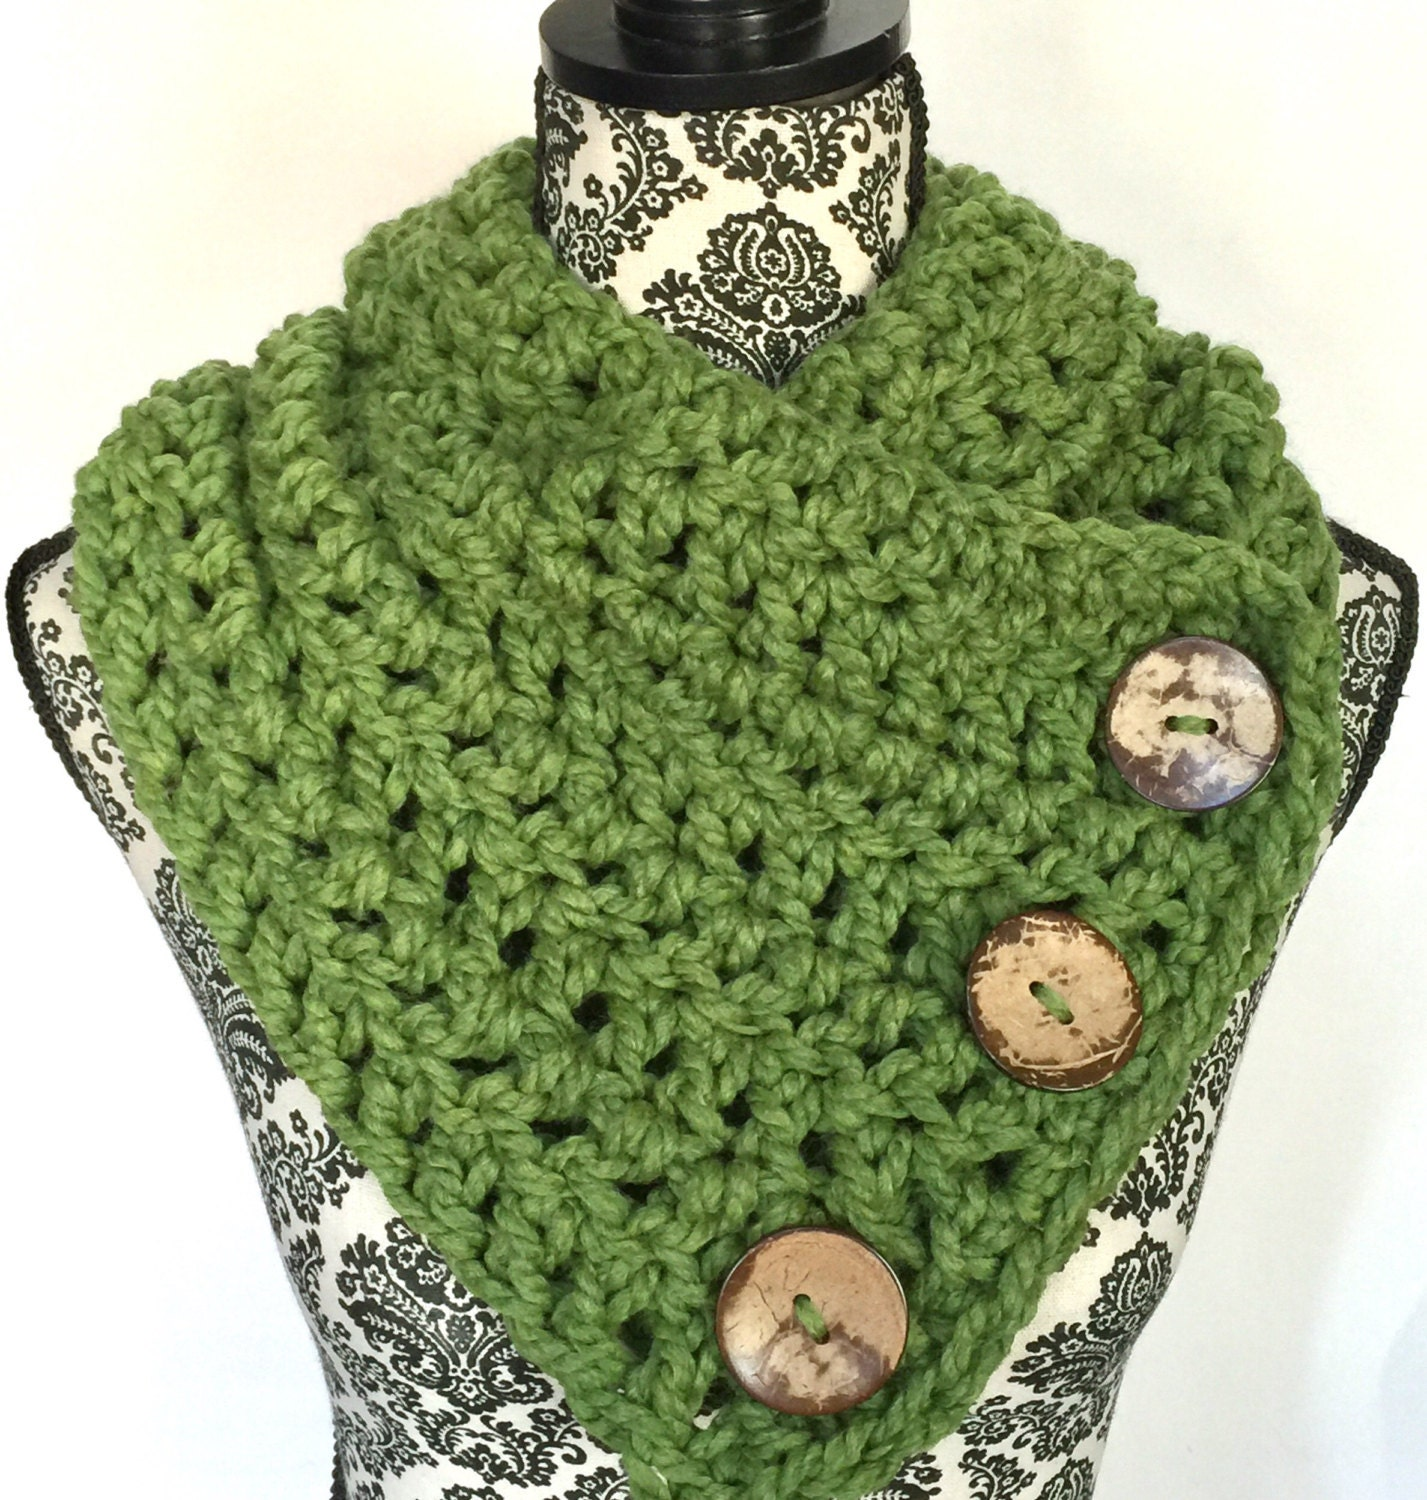 Boston Harbor Scarf in Willow - Shawls & Wraps - Shawls and Ponchos ...